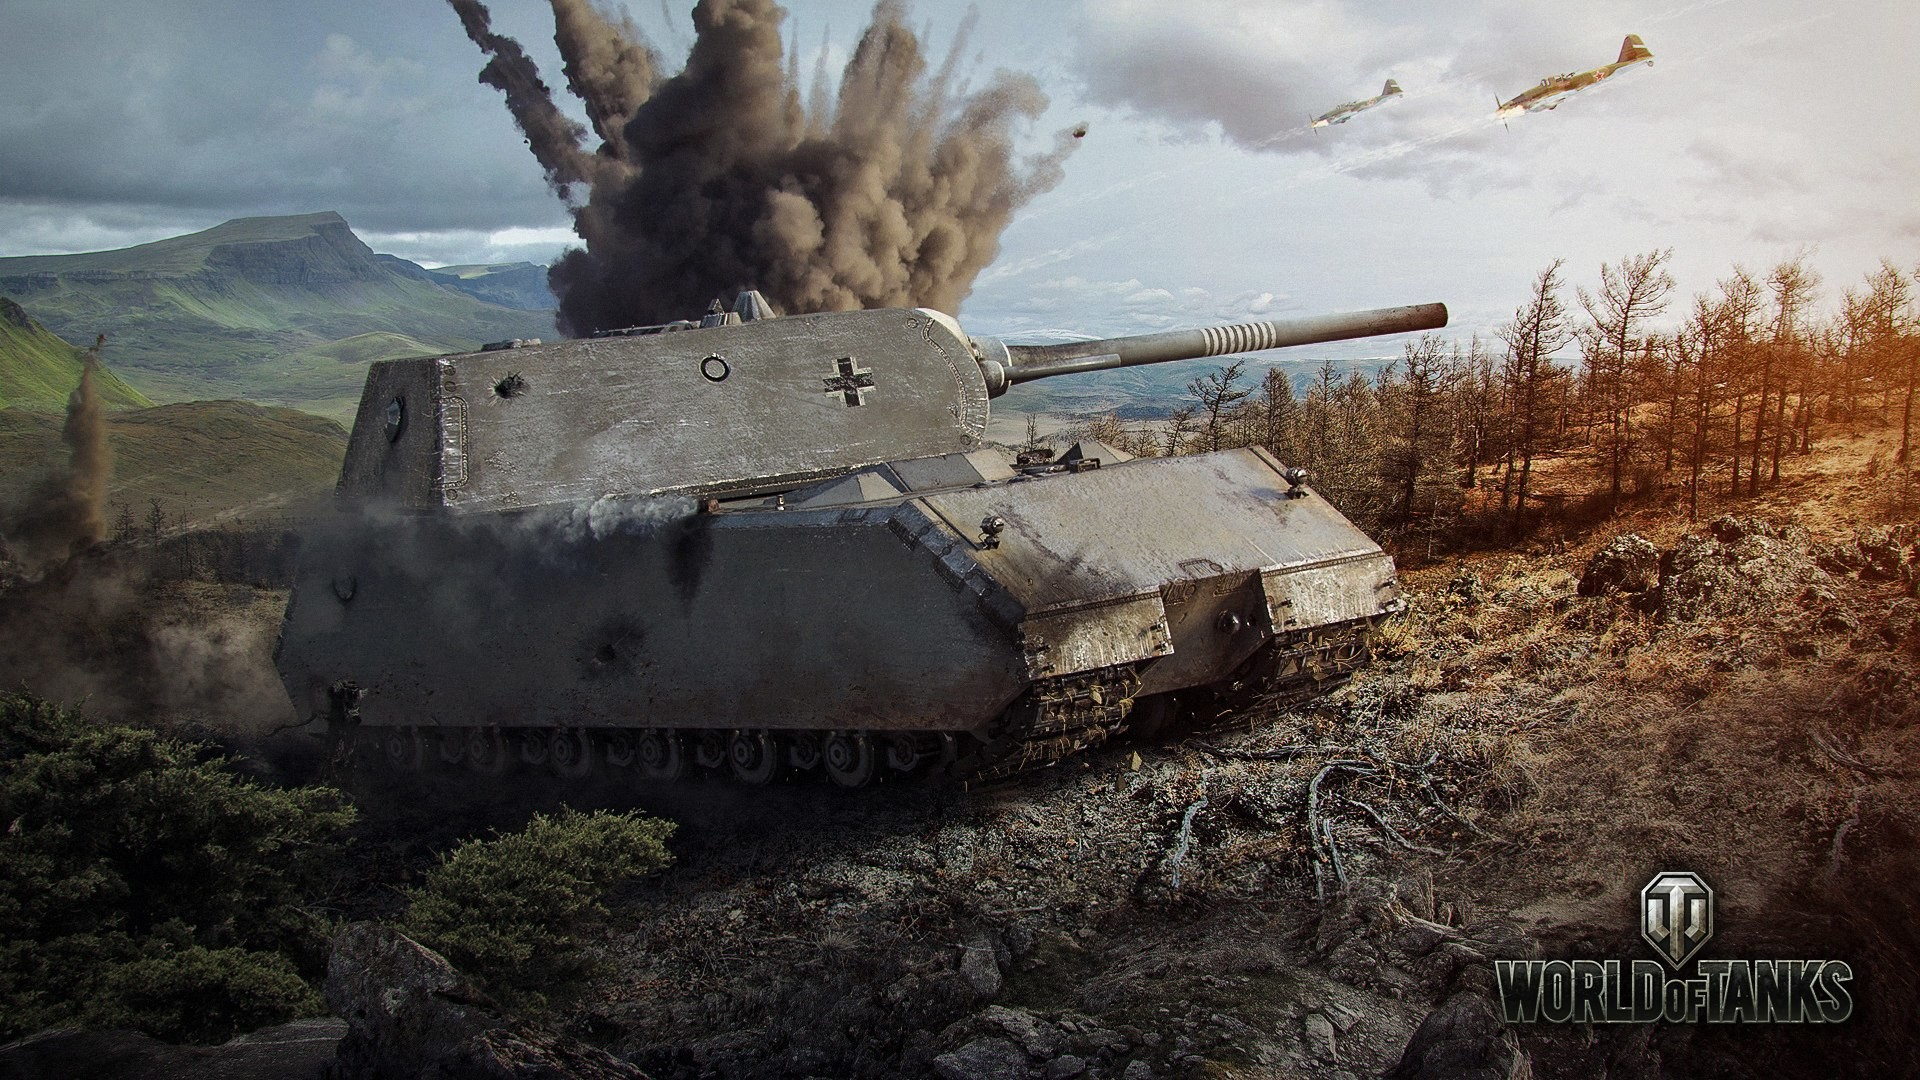 Disturbed The Guy Wallpaper Indestructible · Pics for Gt World Of Tanks  American Wallpaper 1920x1080px